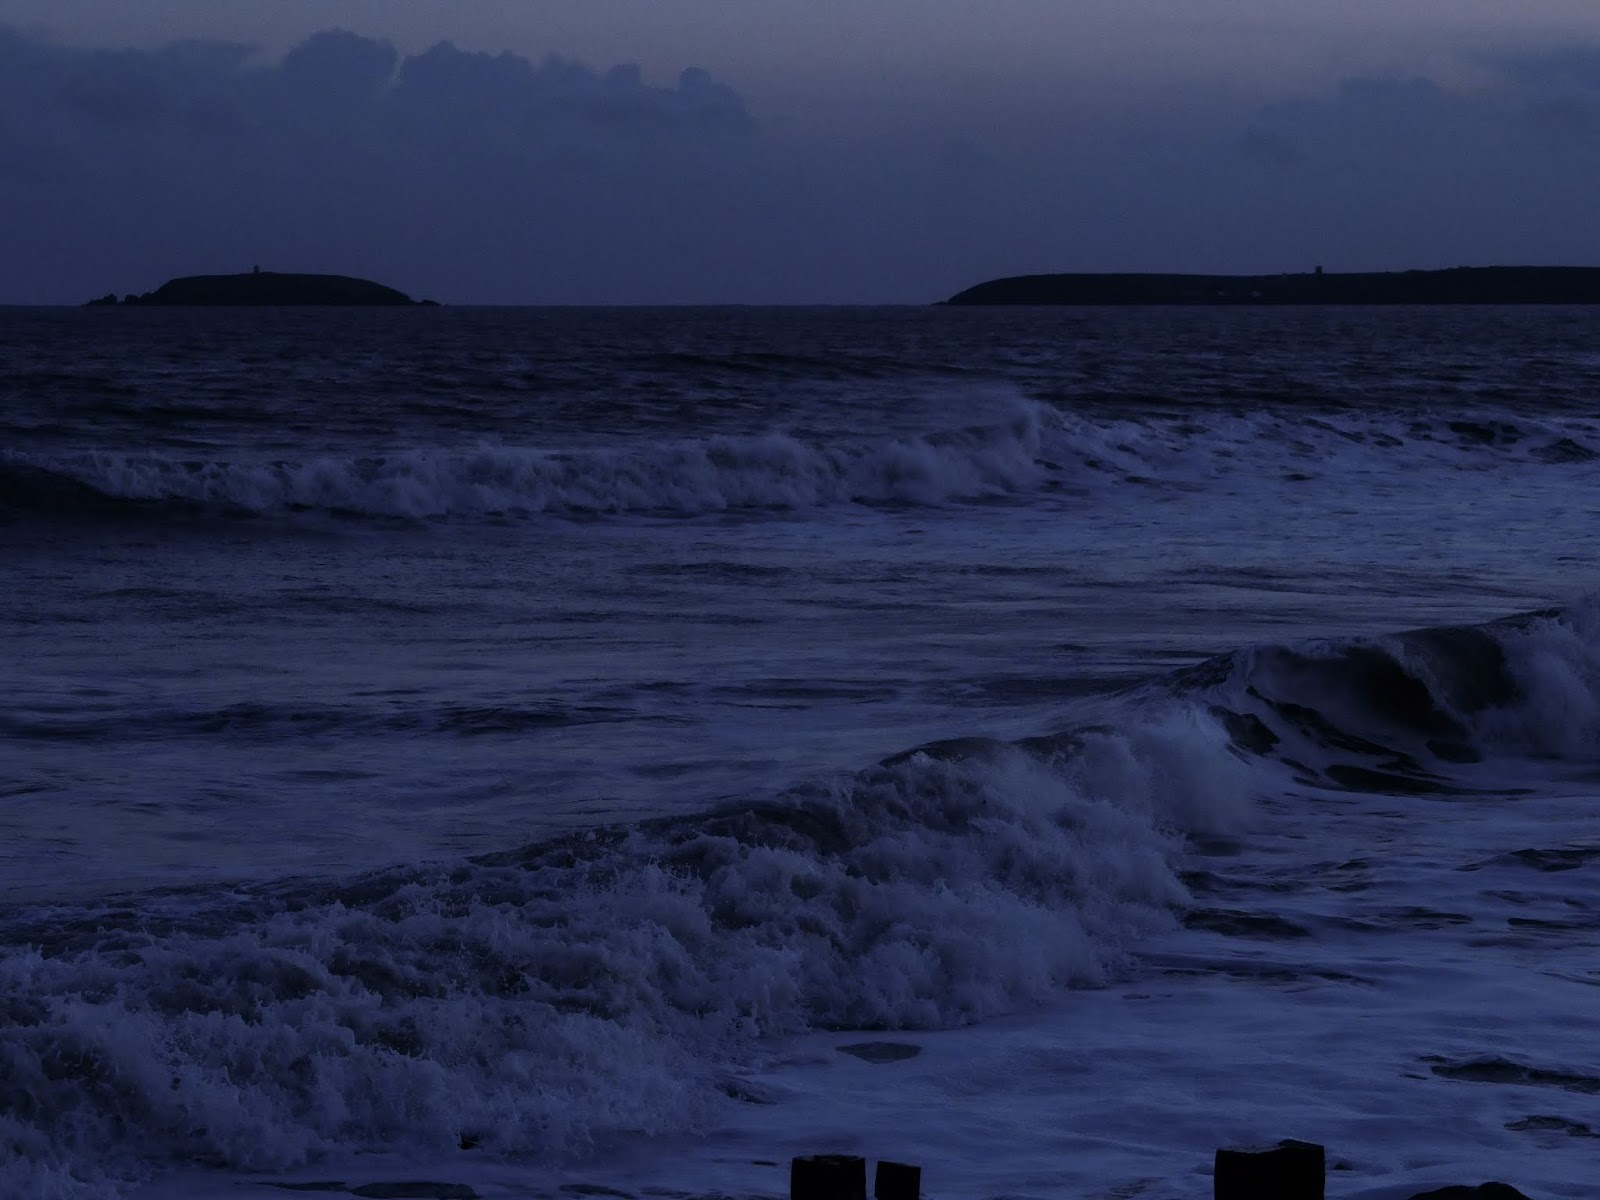 Ocean waves captured during blue hour in Youghal, Co.Cork.